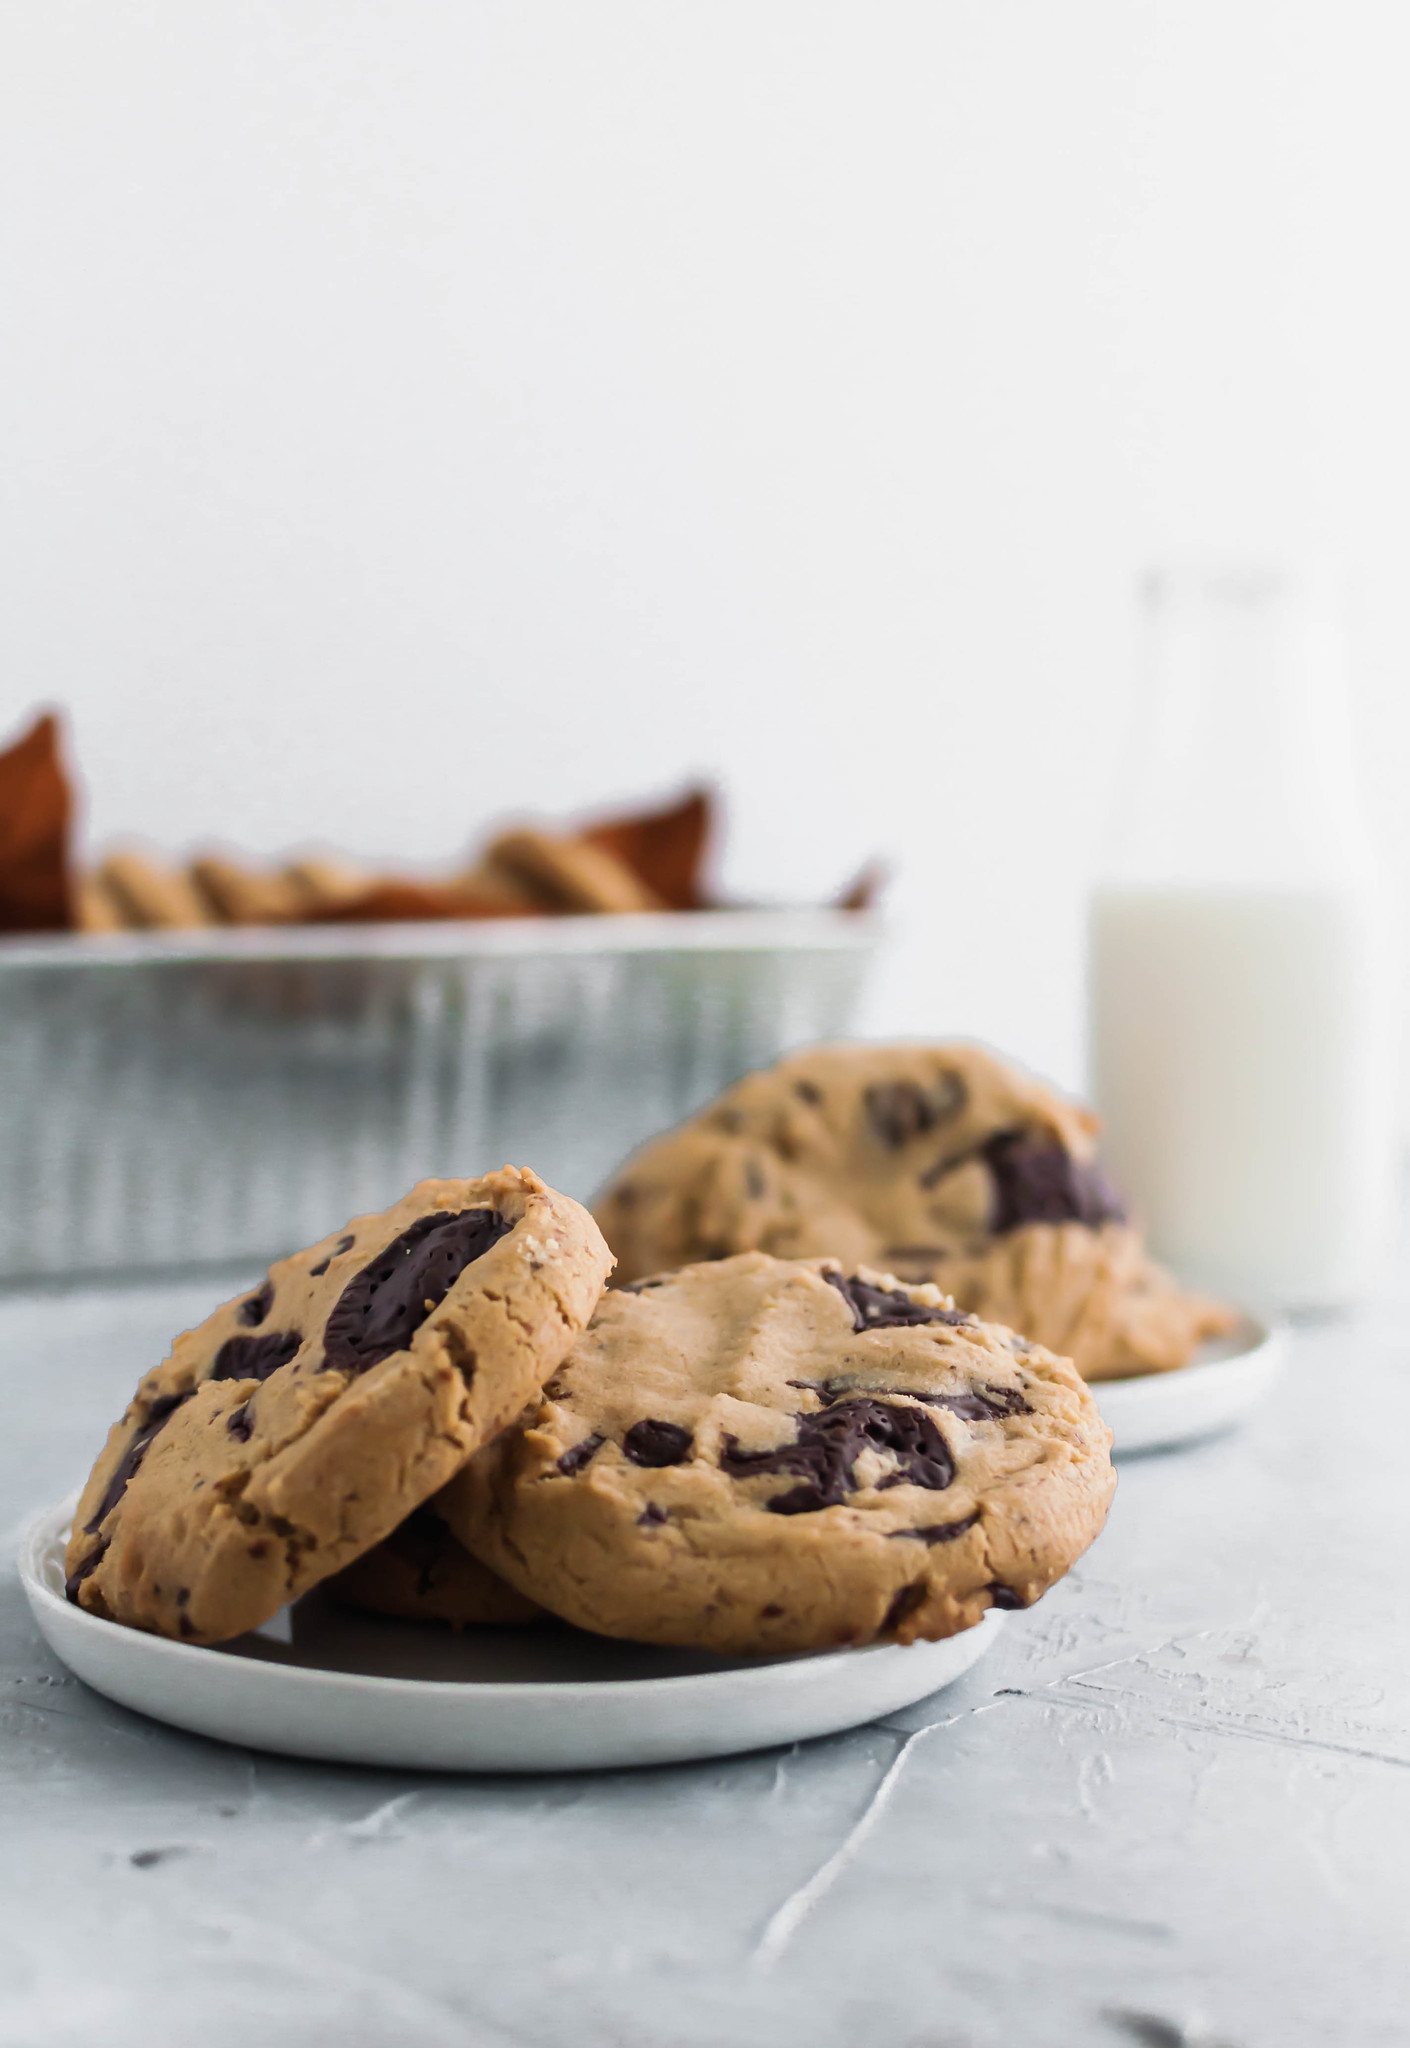 Get ready for the most flavorful cookies. These Brown Butter Chocolate Chip Cookies are the perfect chewy texture with a rich, nutty flavor from the brown butter. Perfect for all your holiday baking.